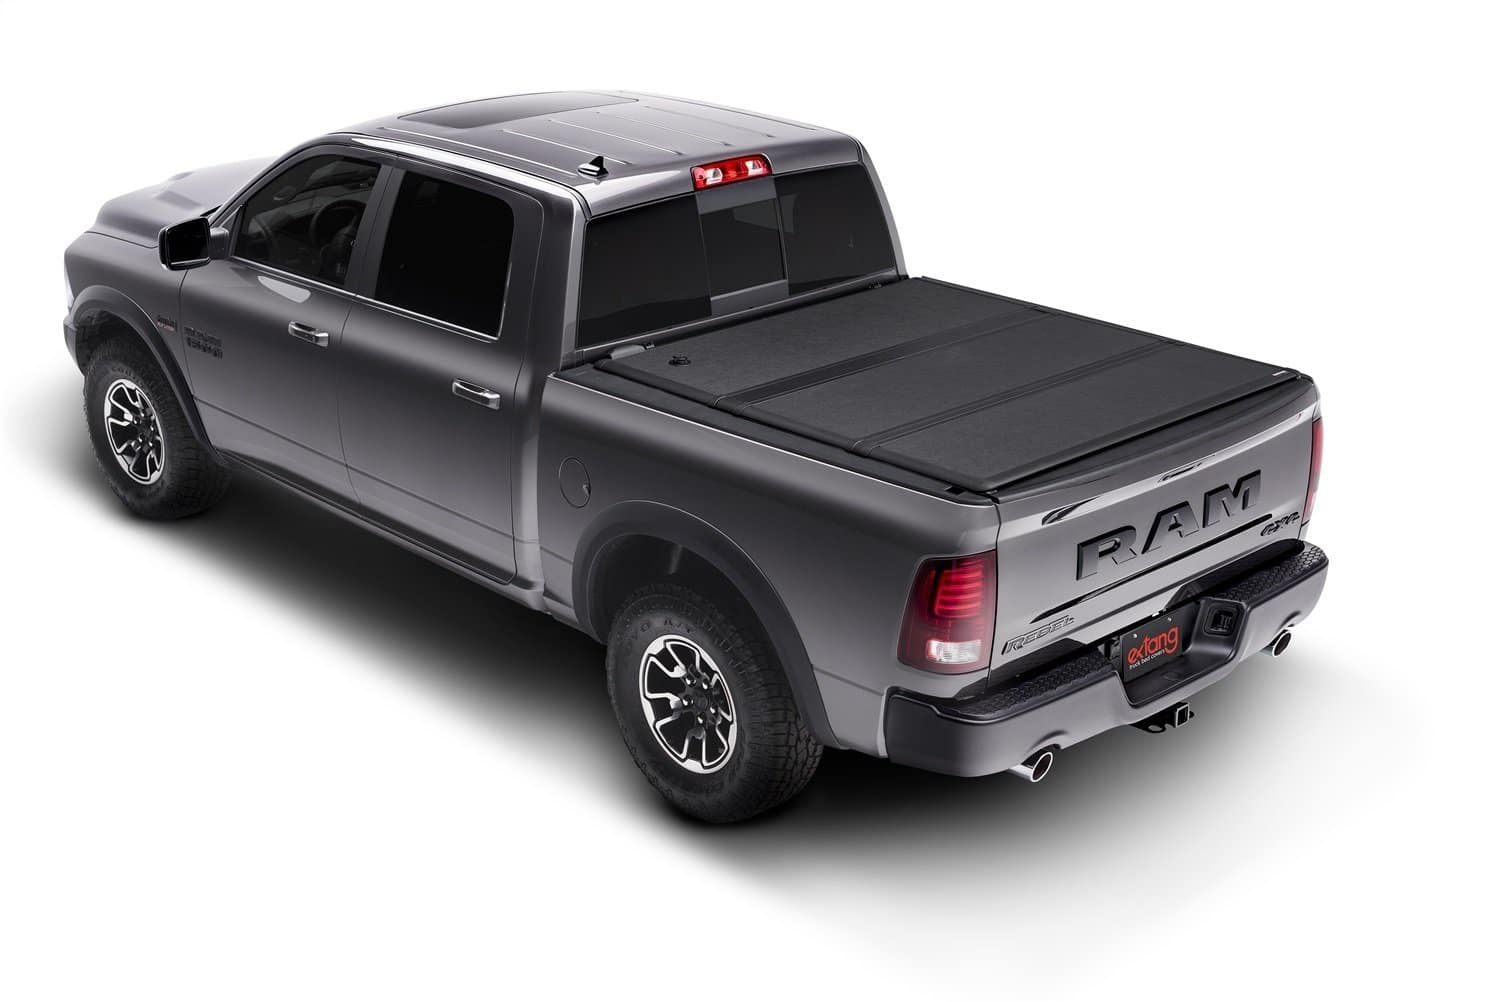 Extang Encore Hard Folding Tonneau Cover - Best Tonneau Cover for Ram 1500